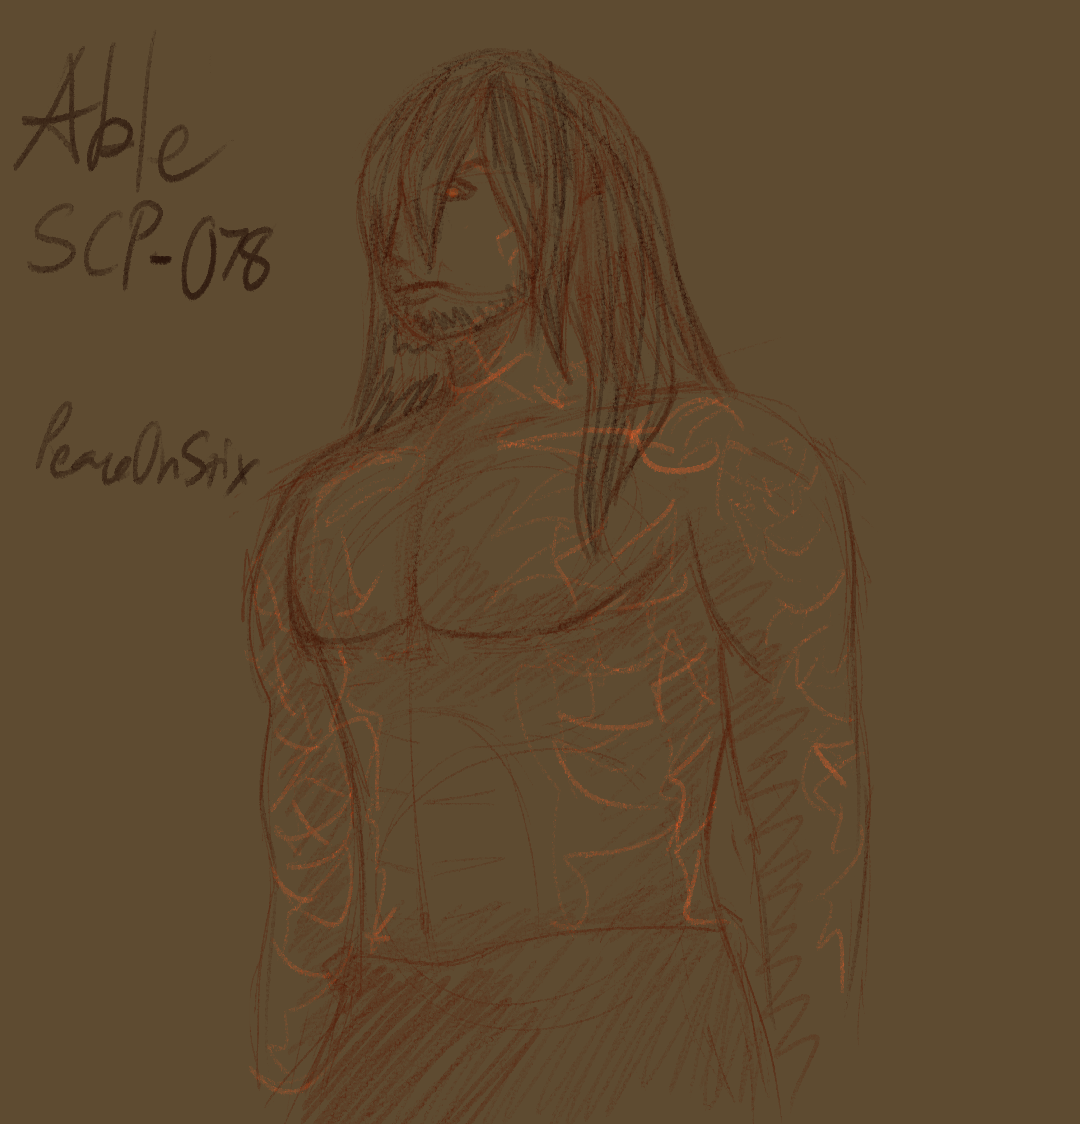 Able_SCP-076